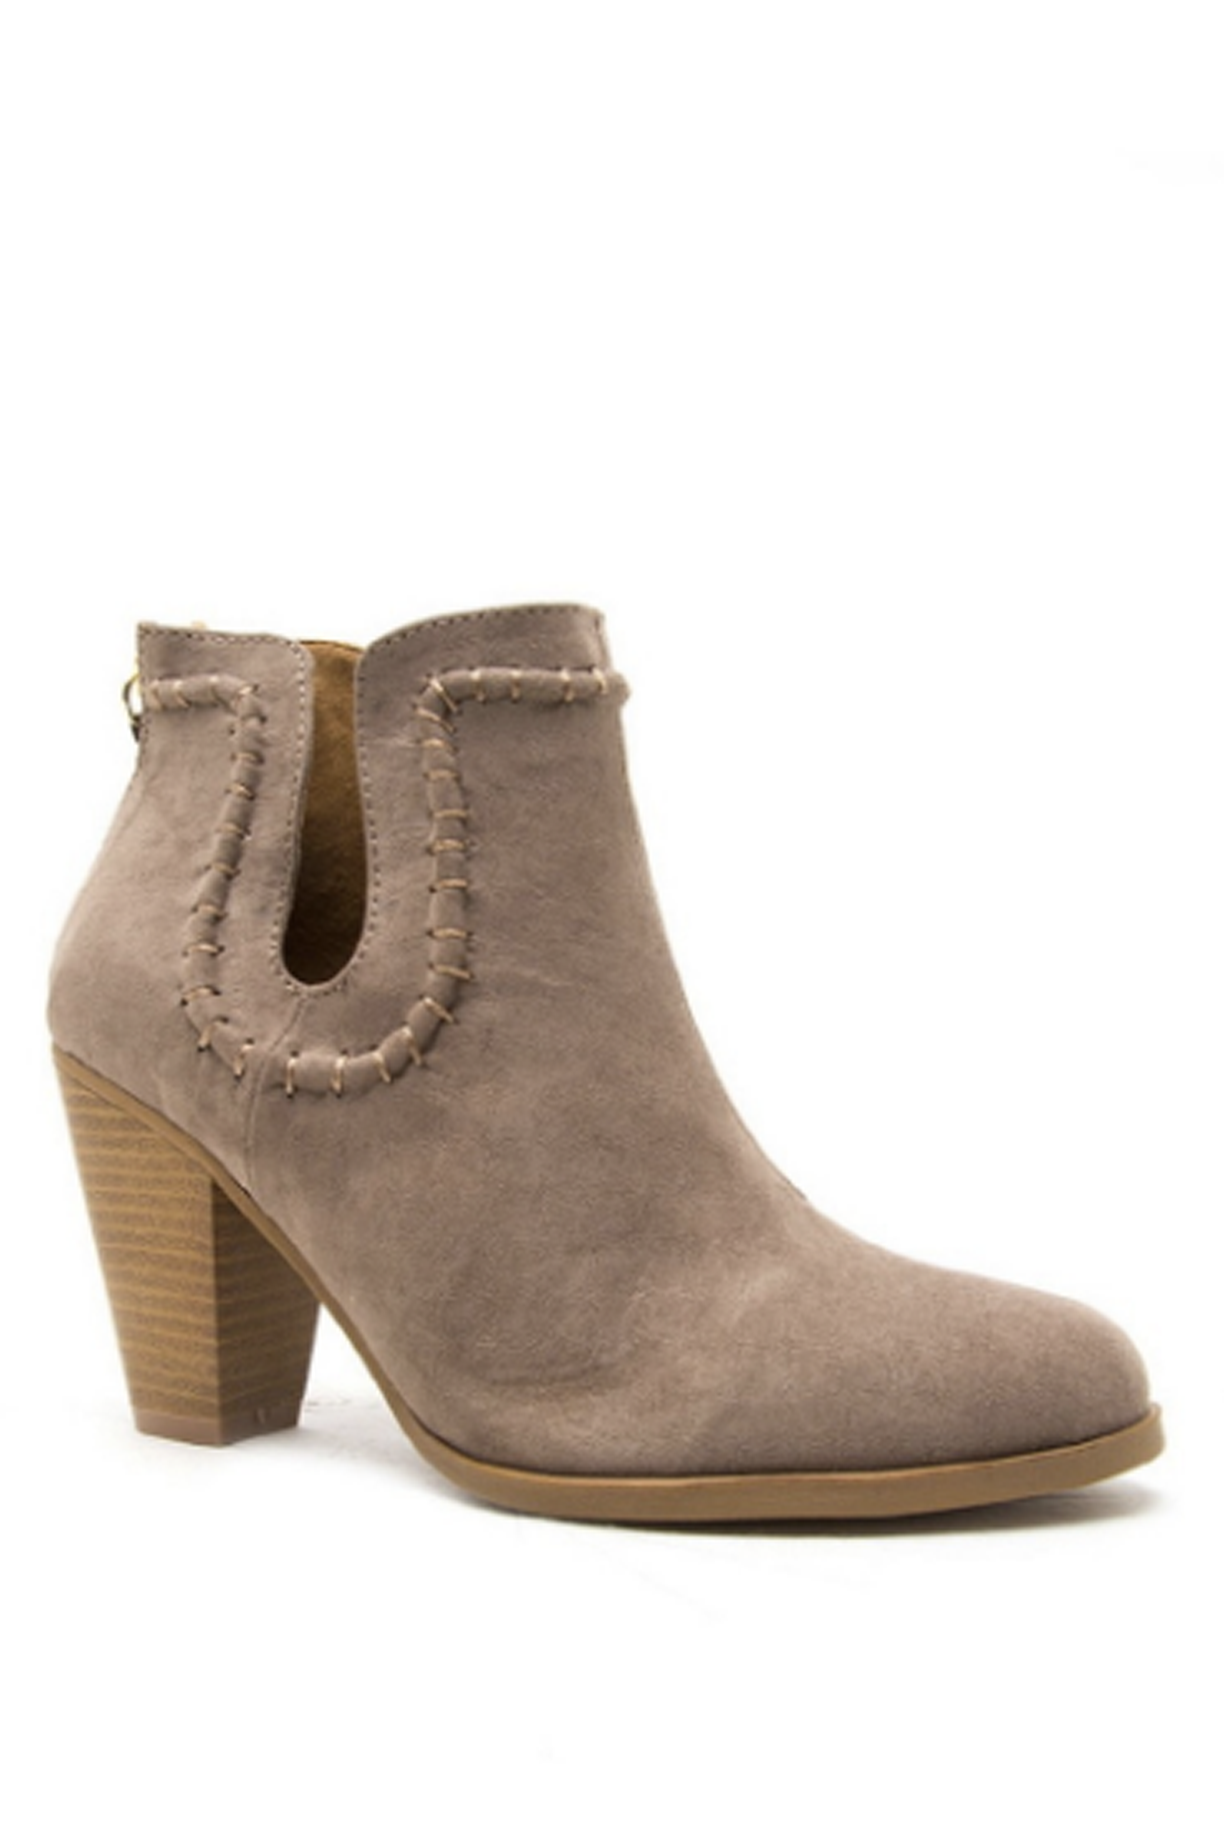 'Lucky Horseshoe' Bootie - Taupe